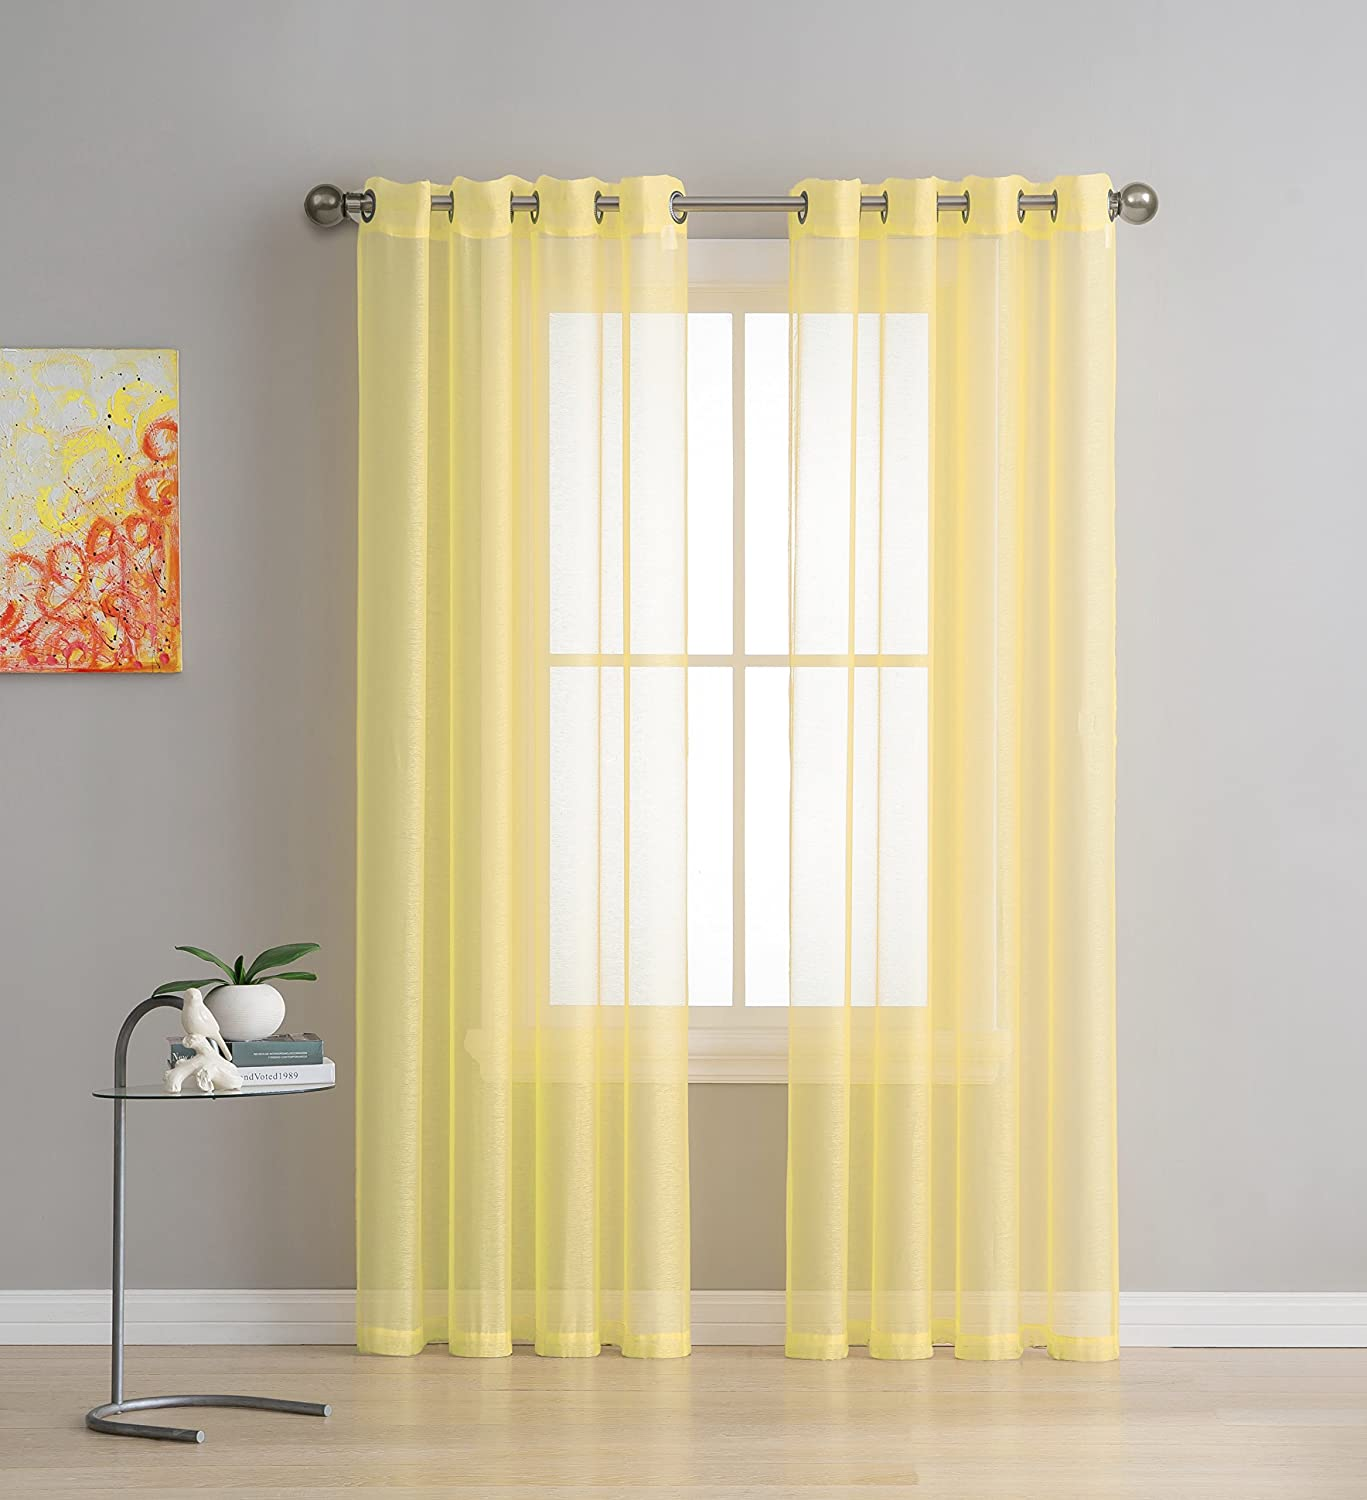 Panel Beautiful, Elegant, Natural Light Flow, and Durable Material Yellow